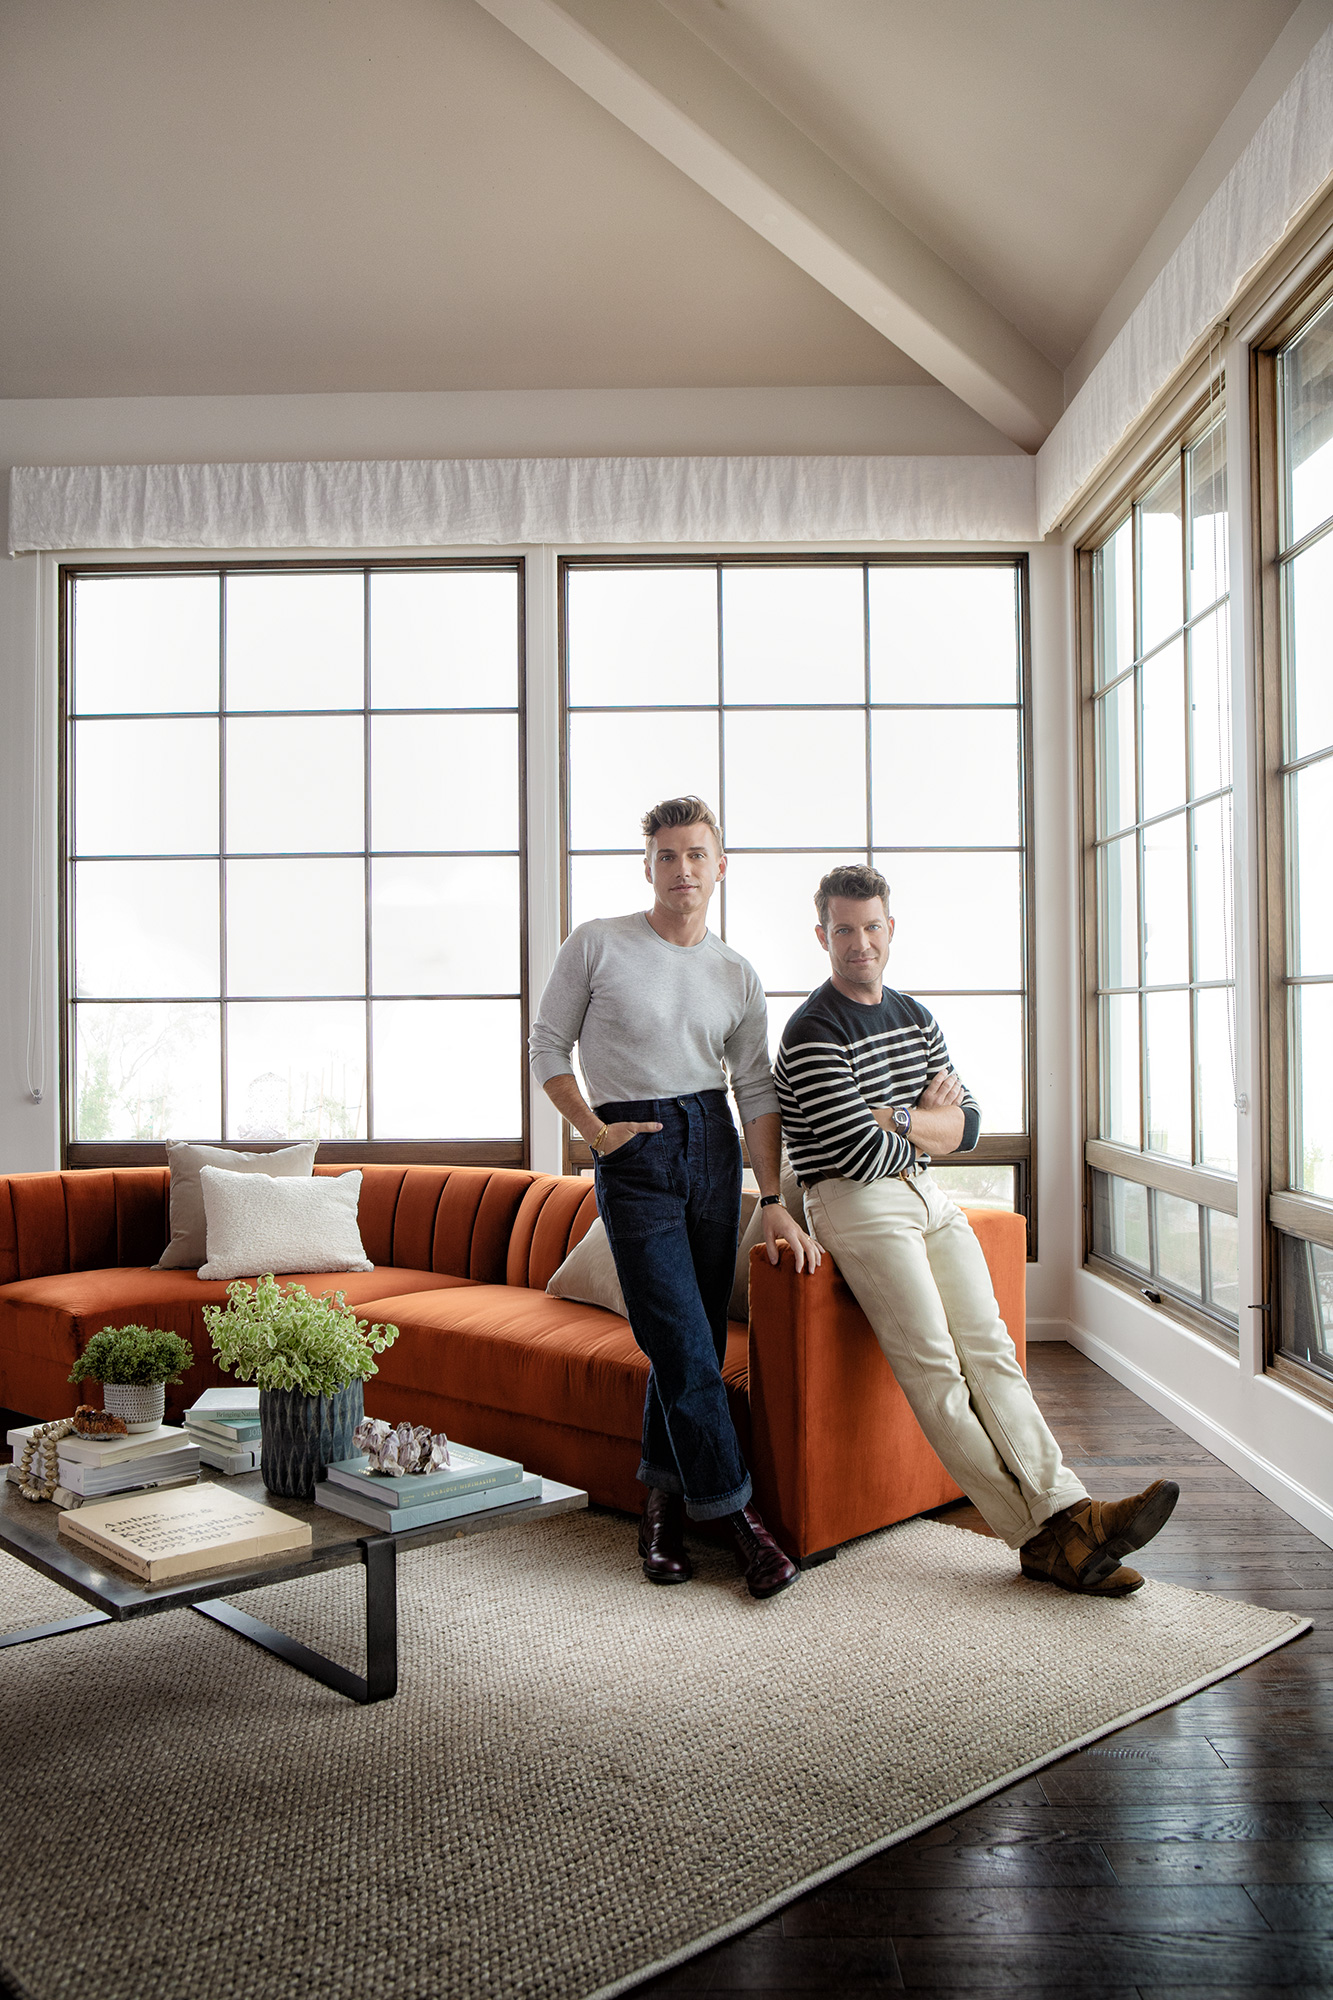 check out these major eugene accent table natural nate berkus jeremiah brent living spaces walnut and debut furniture line inspired their own home ikea end storage round patio